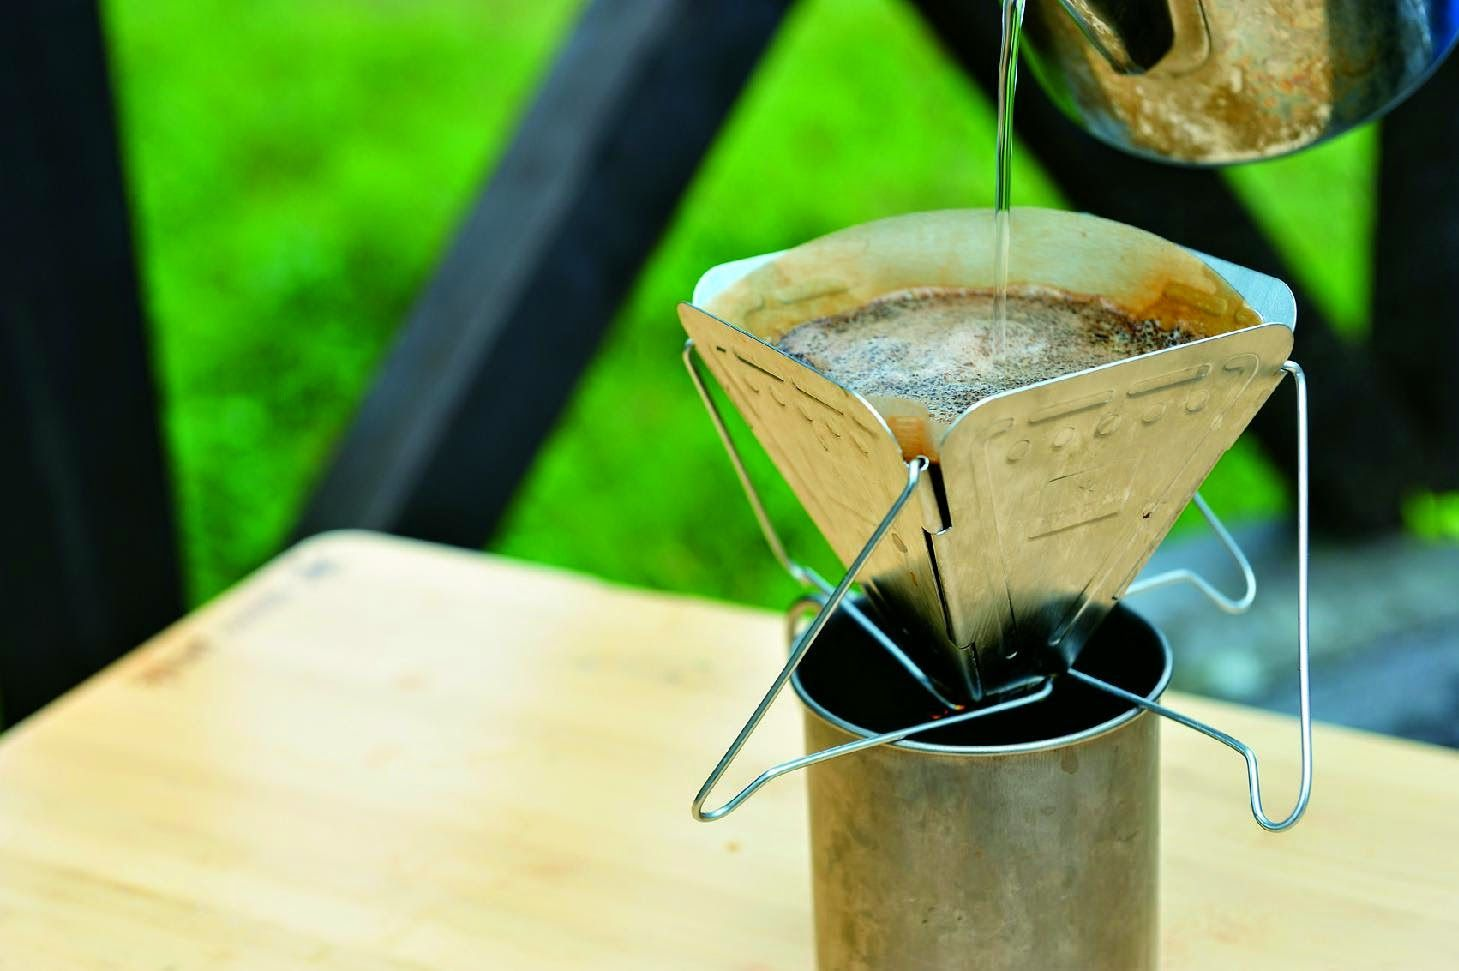 10 camping coffee makers - this is just one of the 10 listed.  See the other 9.